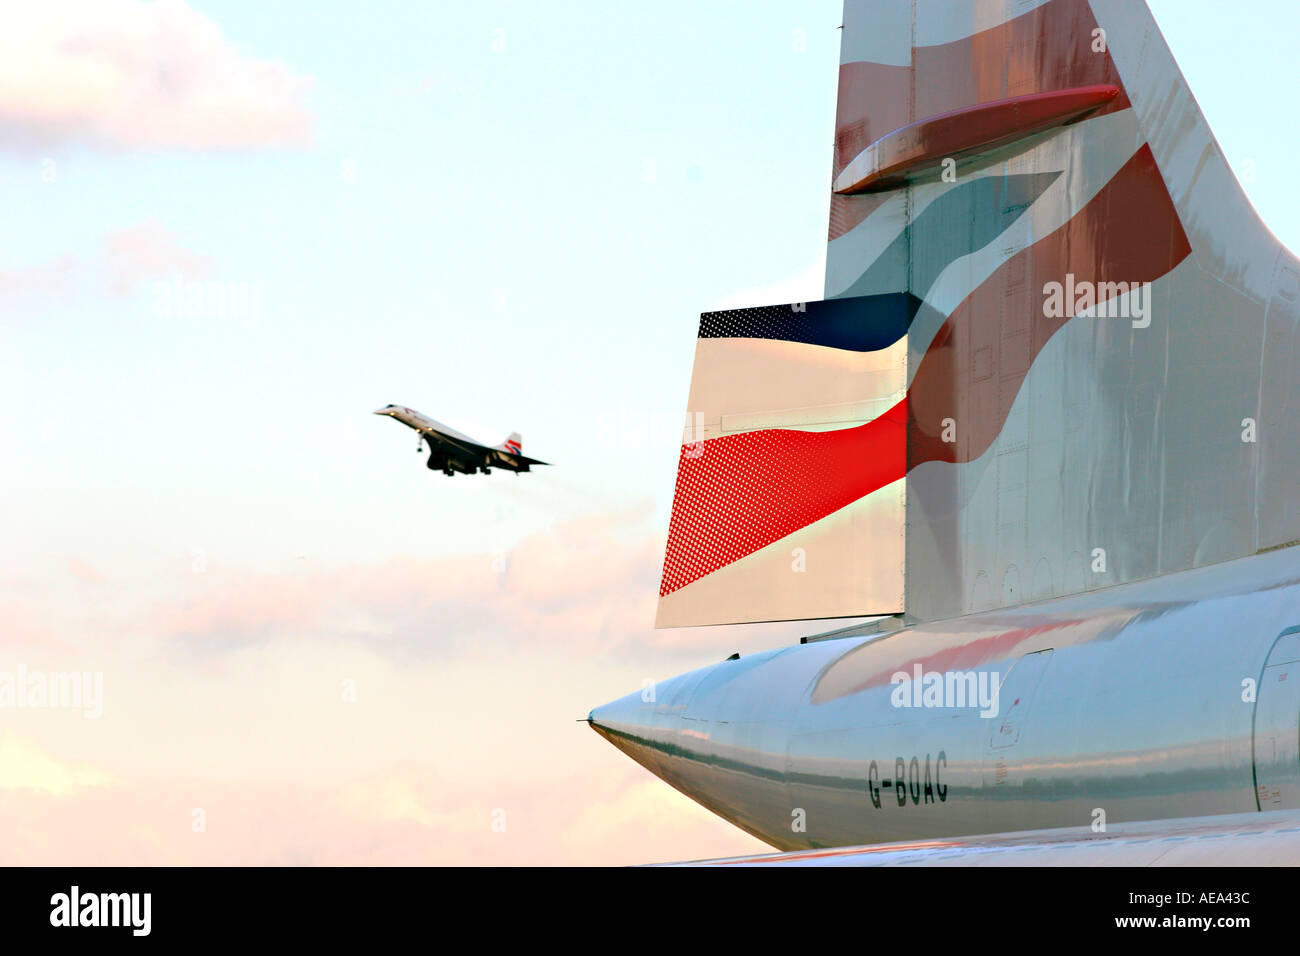 Dernier atterrissage du concorde Photo Stock